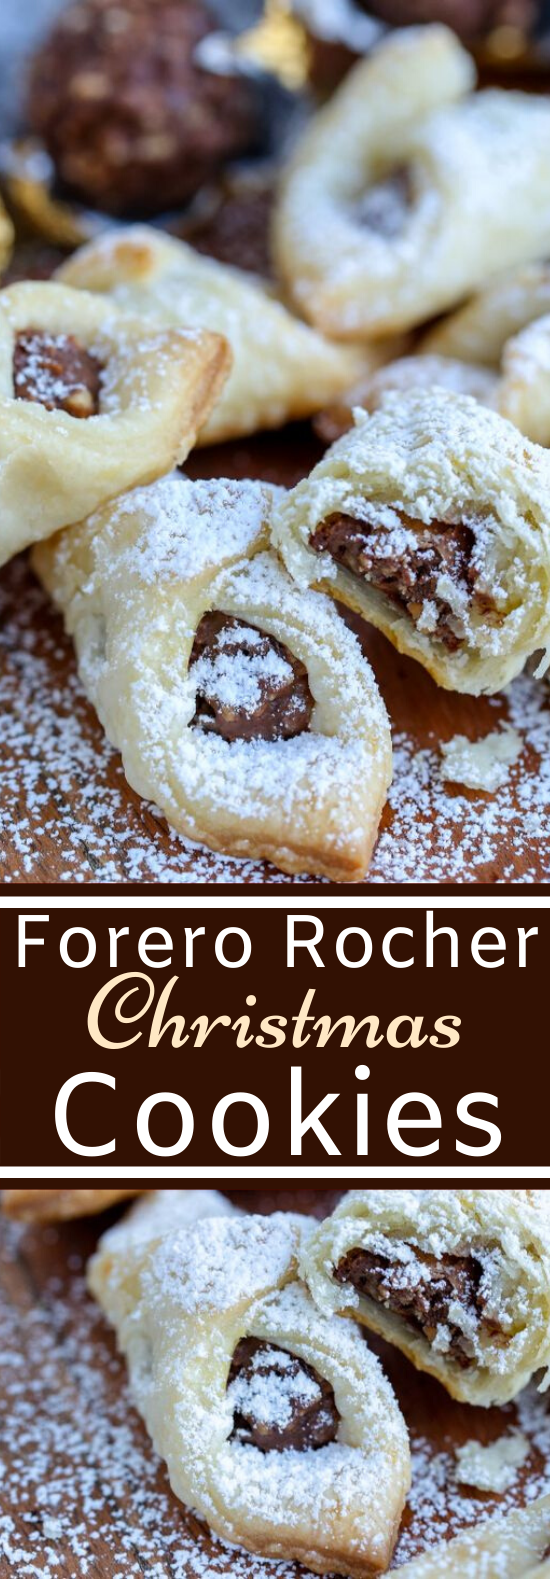 Ferrero Rocher Christmas Cookies #cookies #recipe #holiday #desserts #pastry